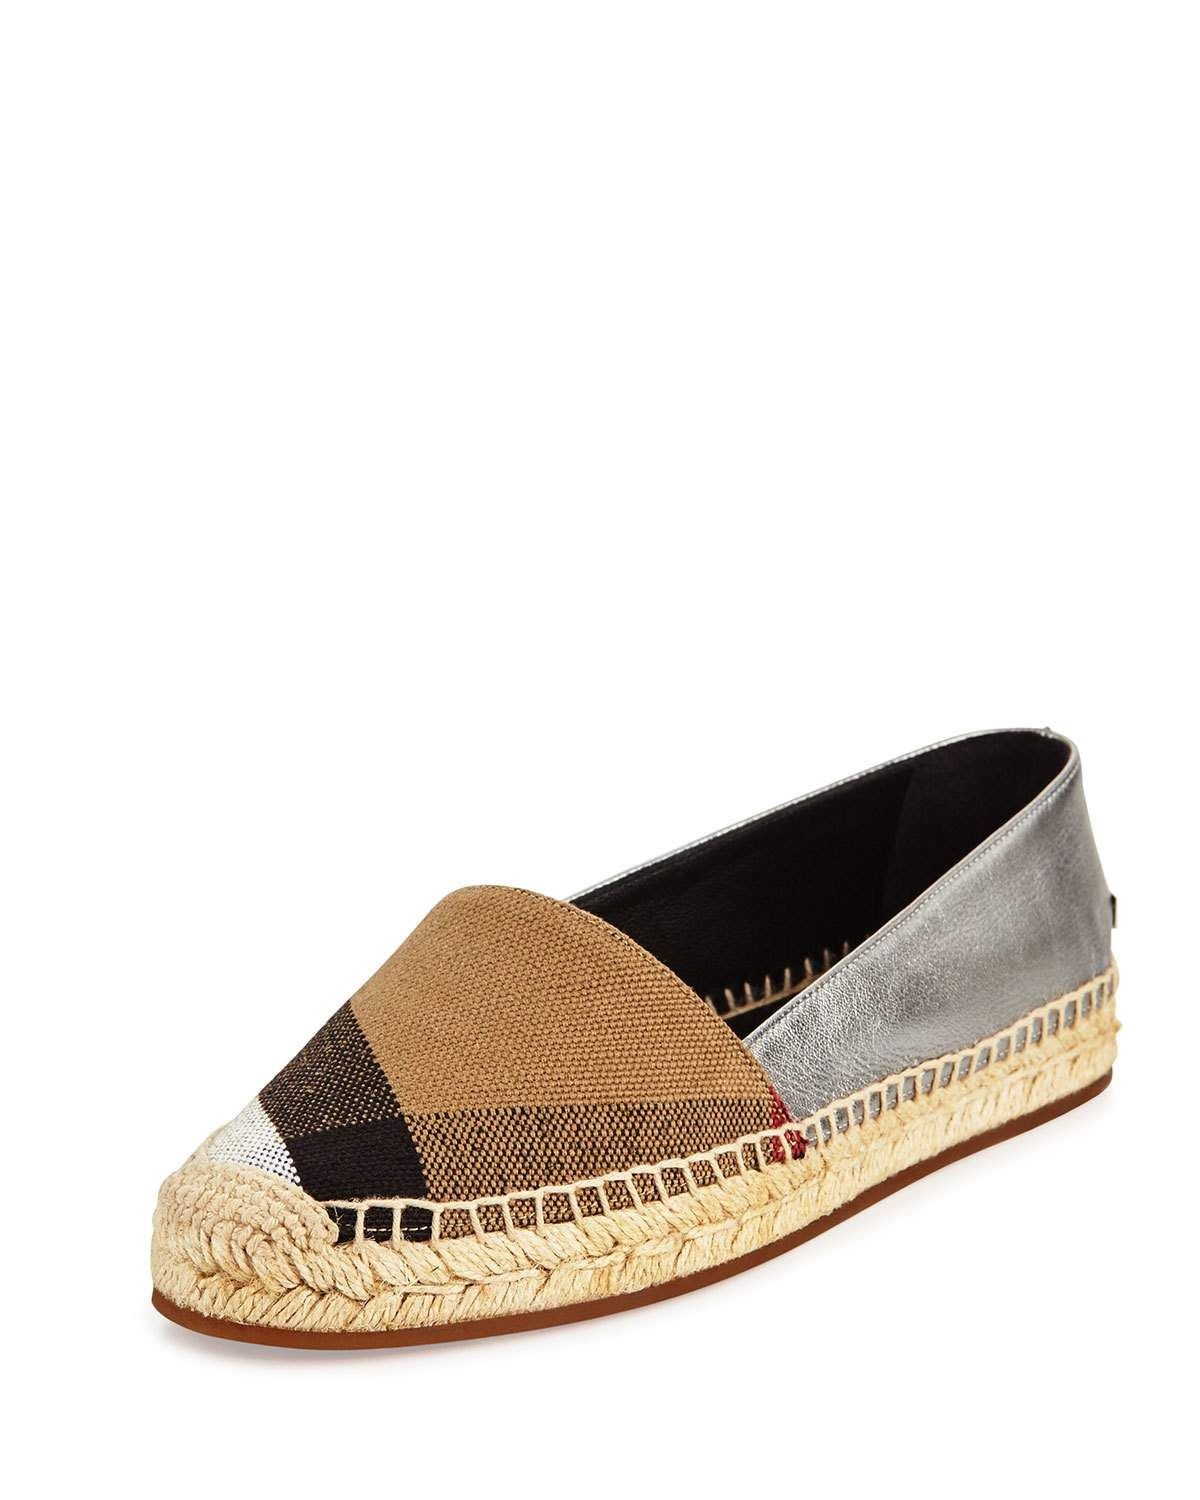 9556650b5 Burberry Hodgeson Check Canvas & Leather Espadrille Flat, Black/Silver